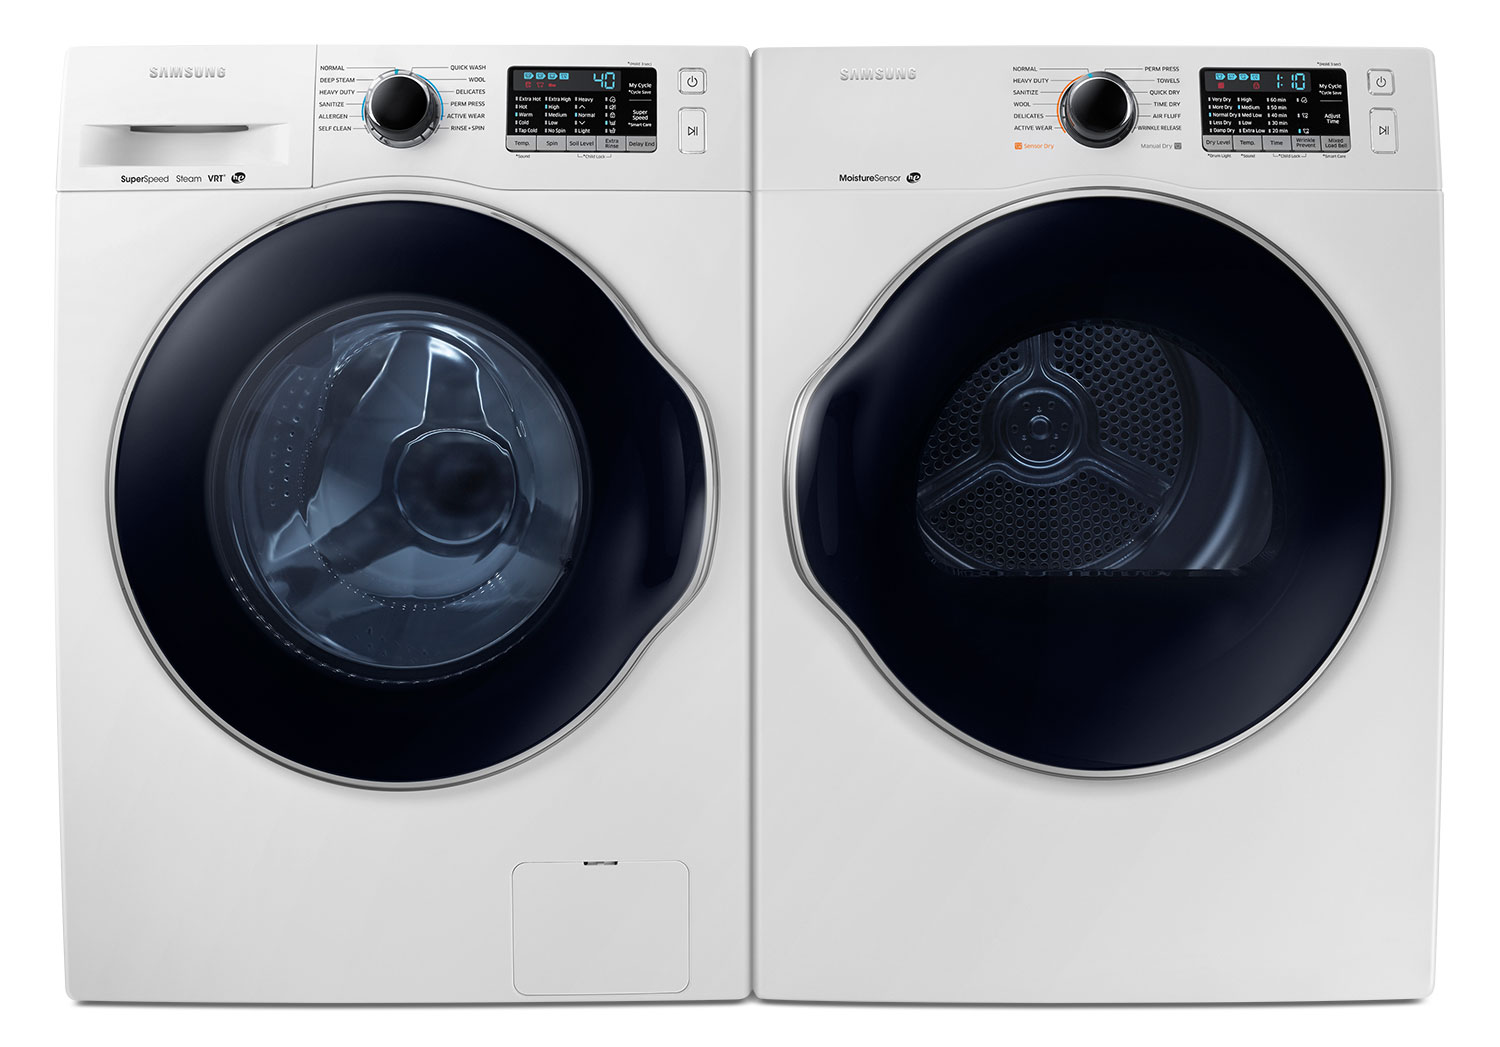 Washers and Dryers - Samsung Compact 2.6 Cu. Ft. Front-Load Washer and 4.0 Cu. Ft. Electric Dryer – White